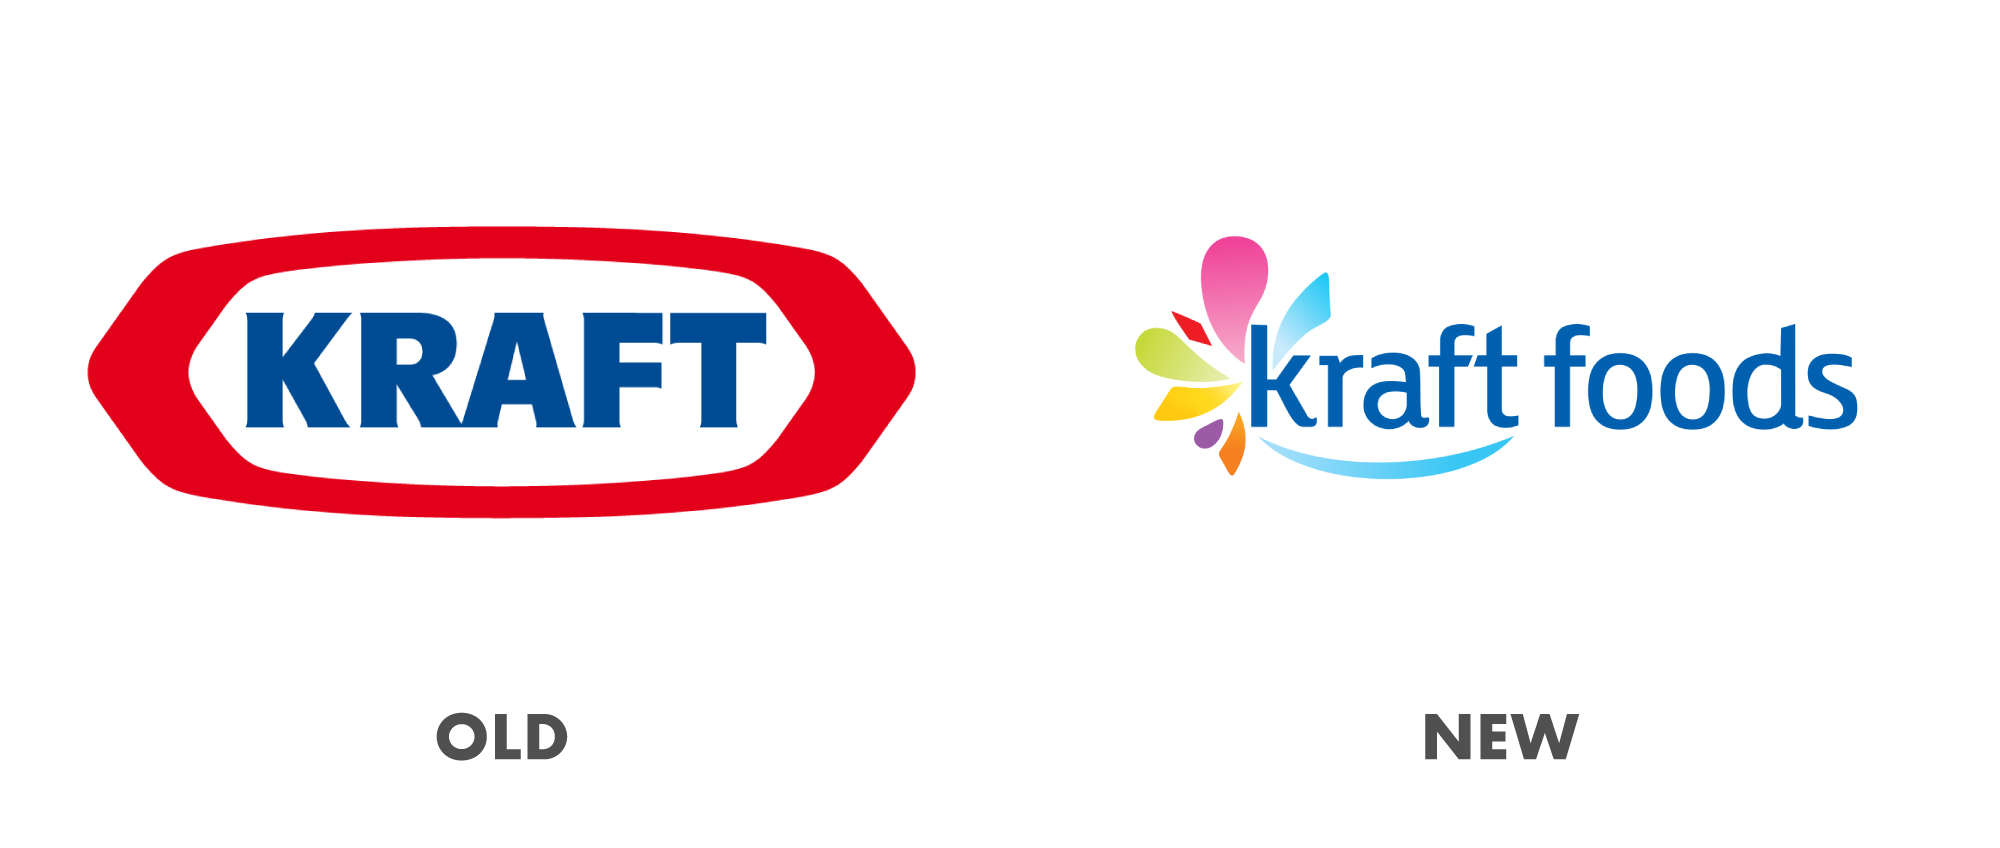 Failed rebrands - why they are classed as a failure. Old and new kraft logos